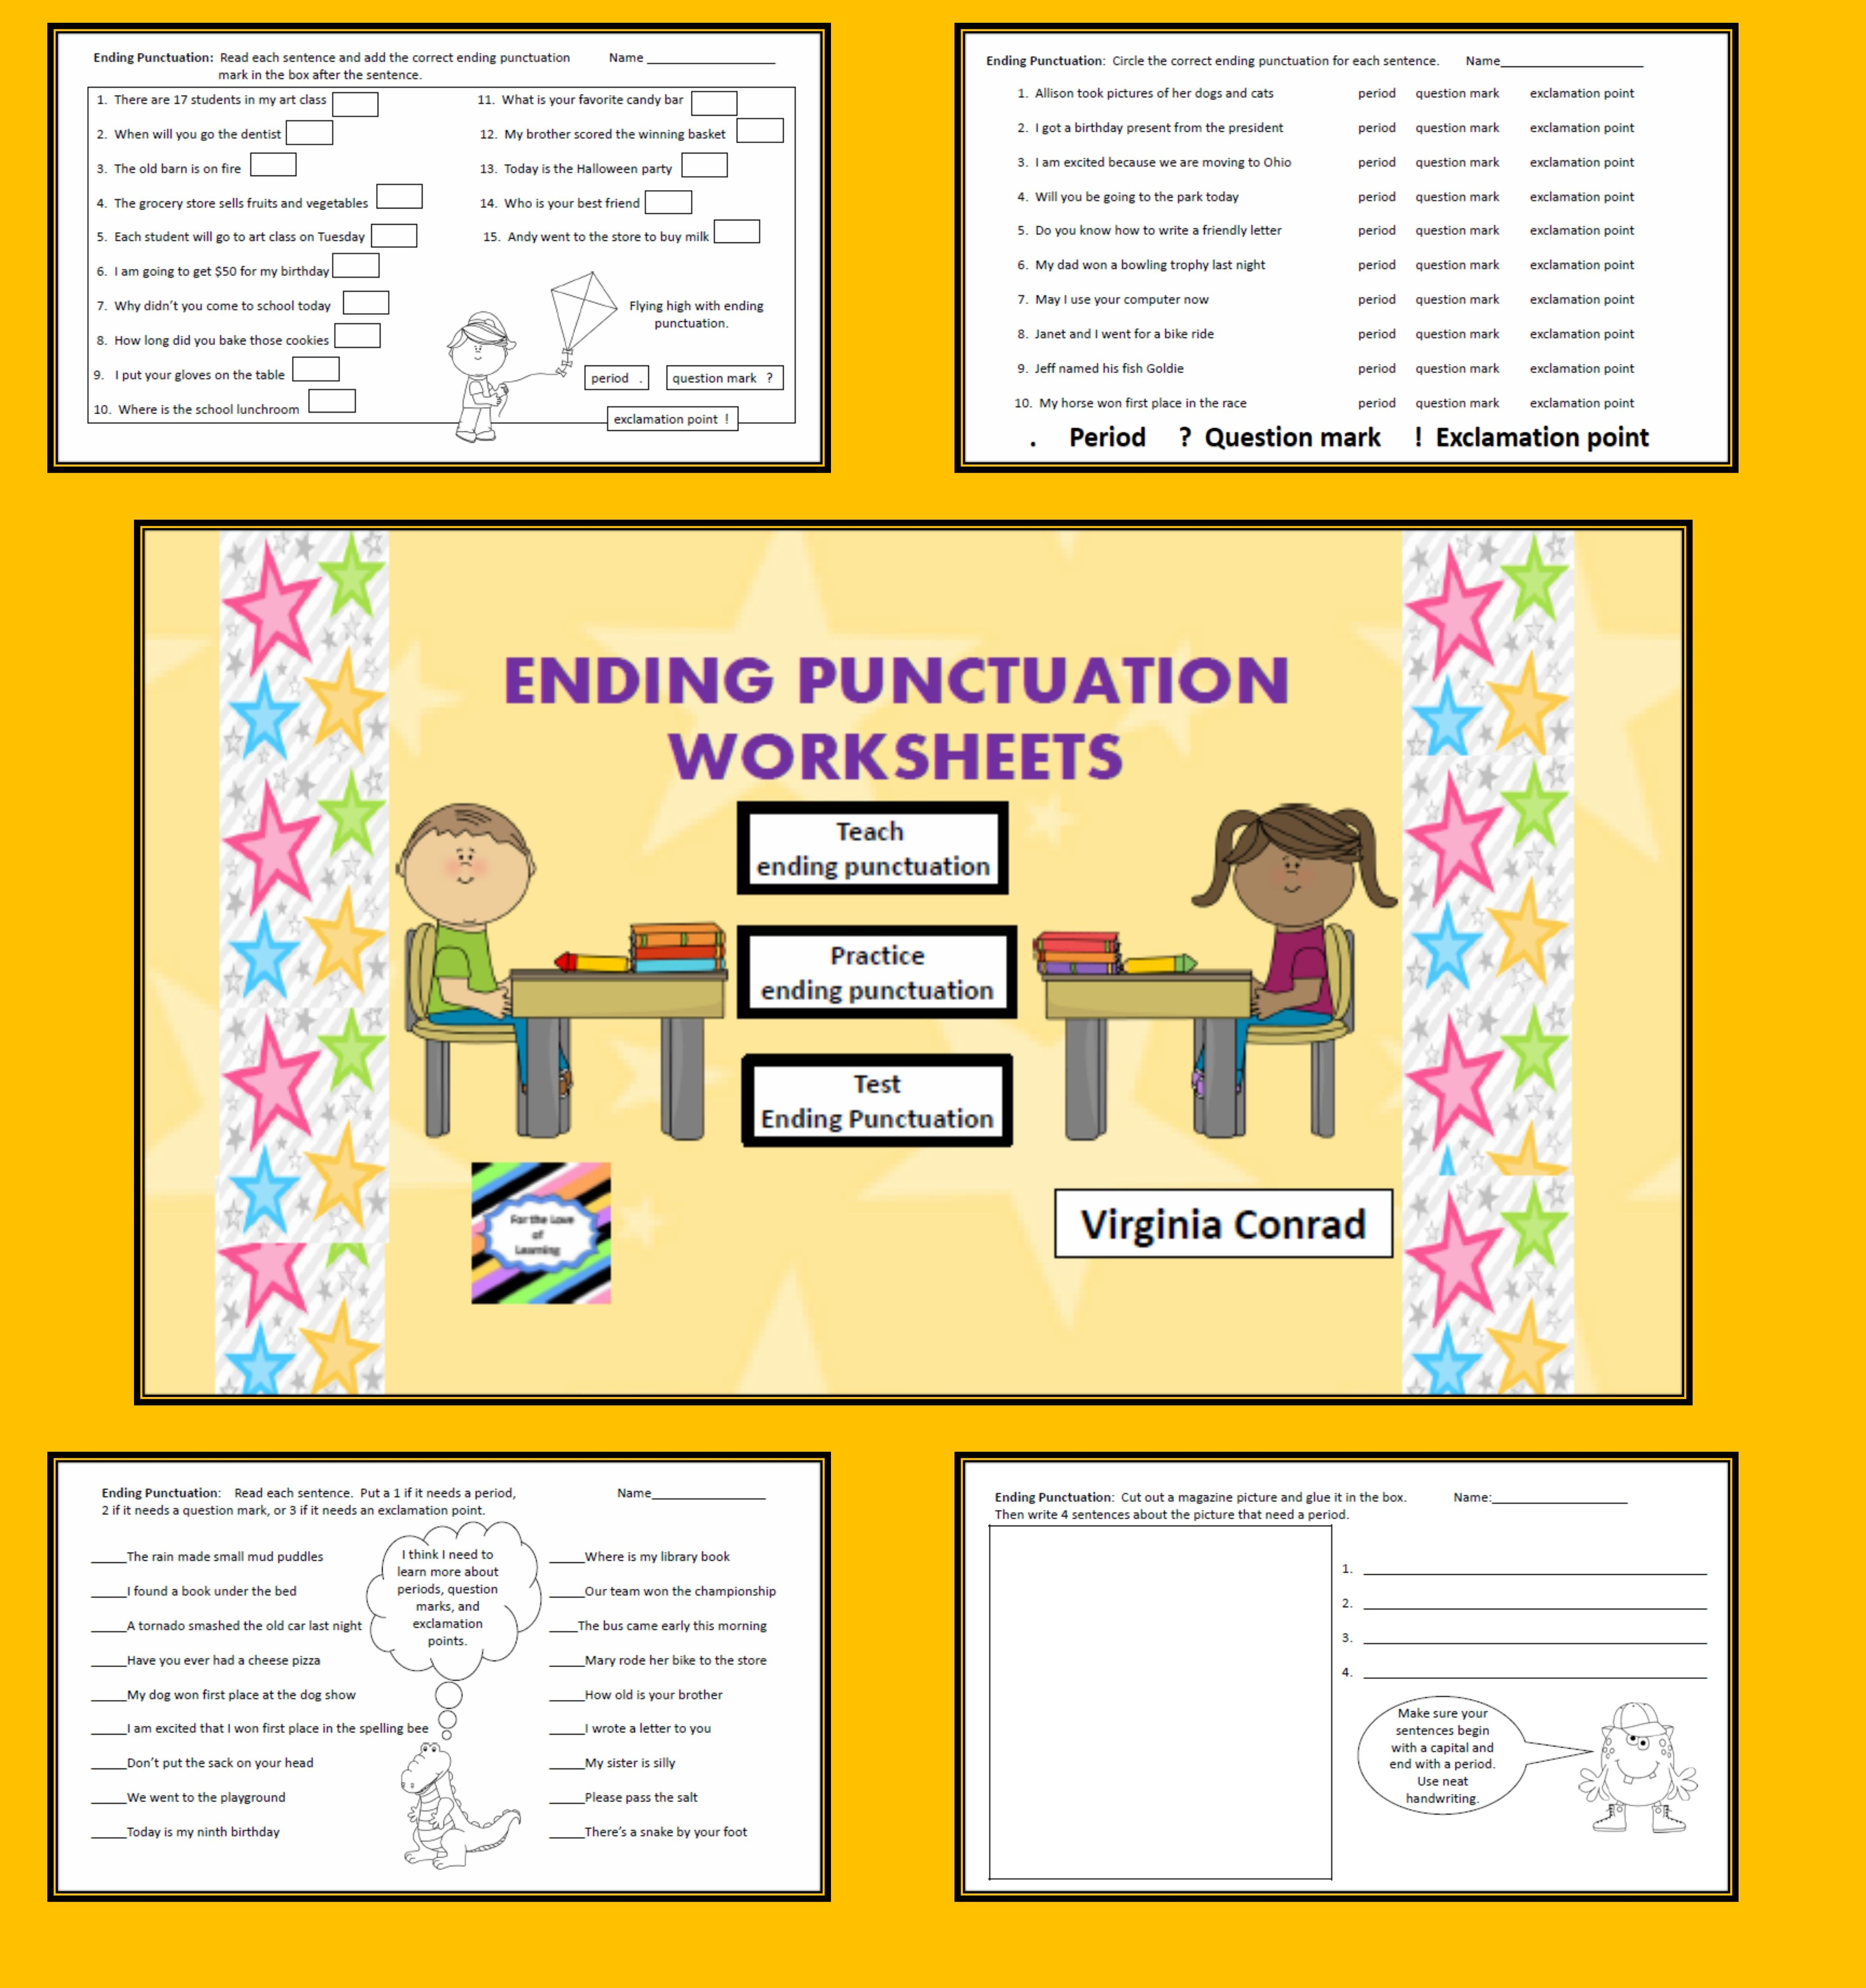 Ending Punctuation Worksheets 10 Worksheets